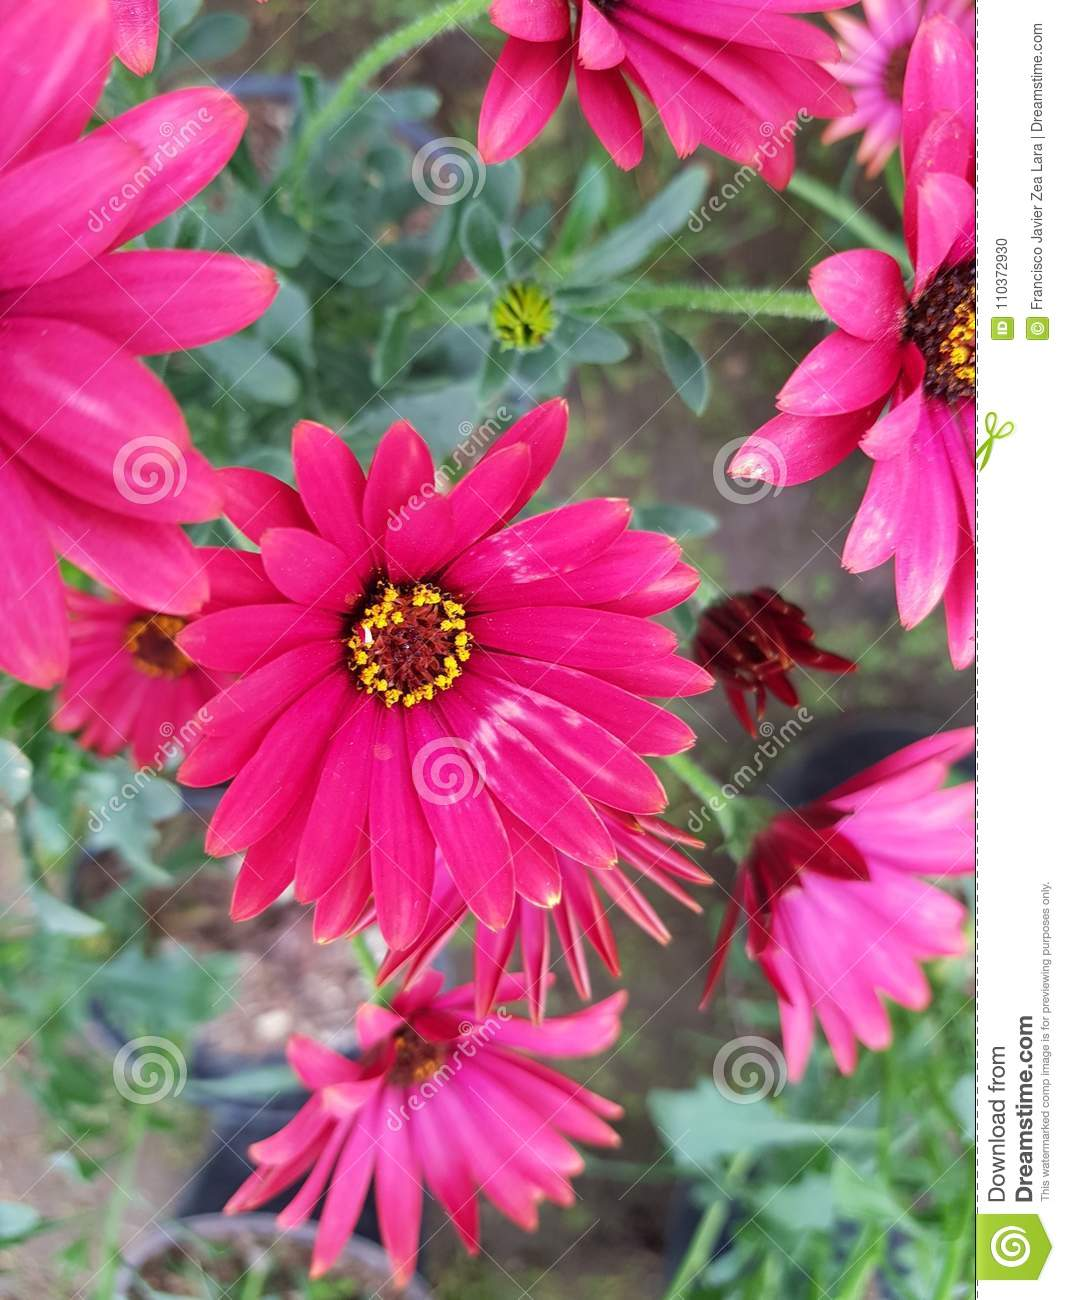 Red daisy flowers in garden stock photo image of colors botany red daisy flowers in garden izmirmasajfo